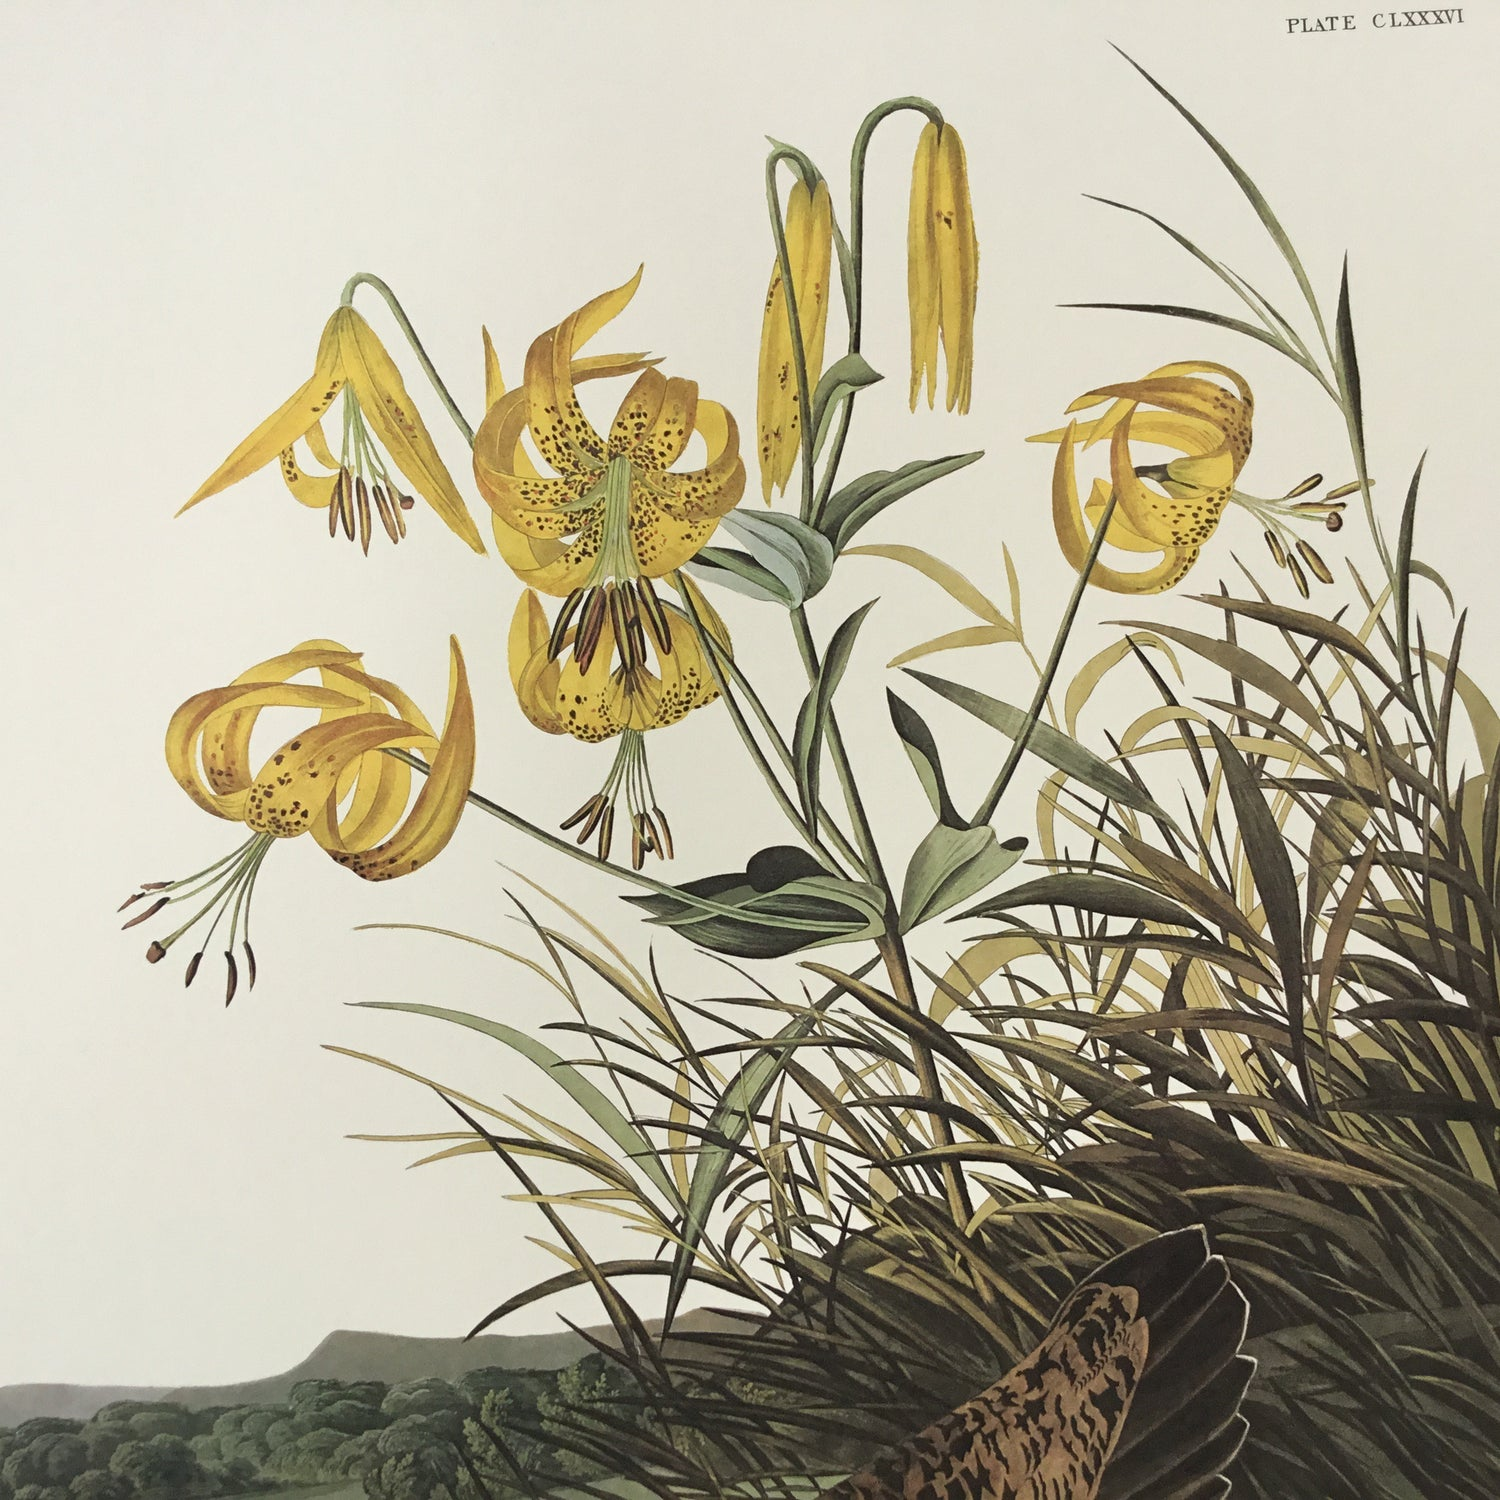 Pinnated Grous Audubon Print. Princeton Audubon. The world's only direct camera edition of this image.